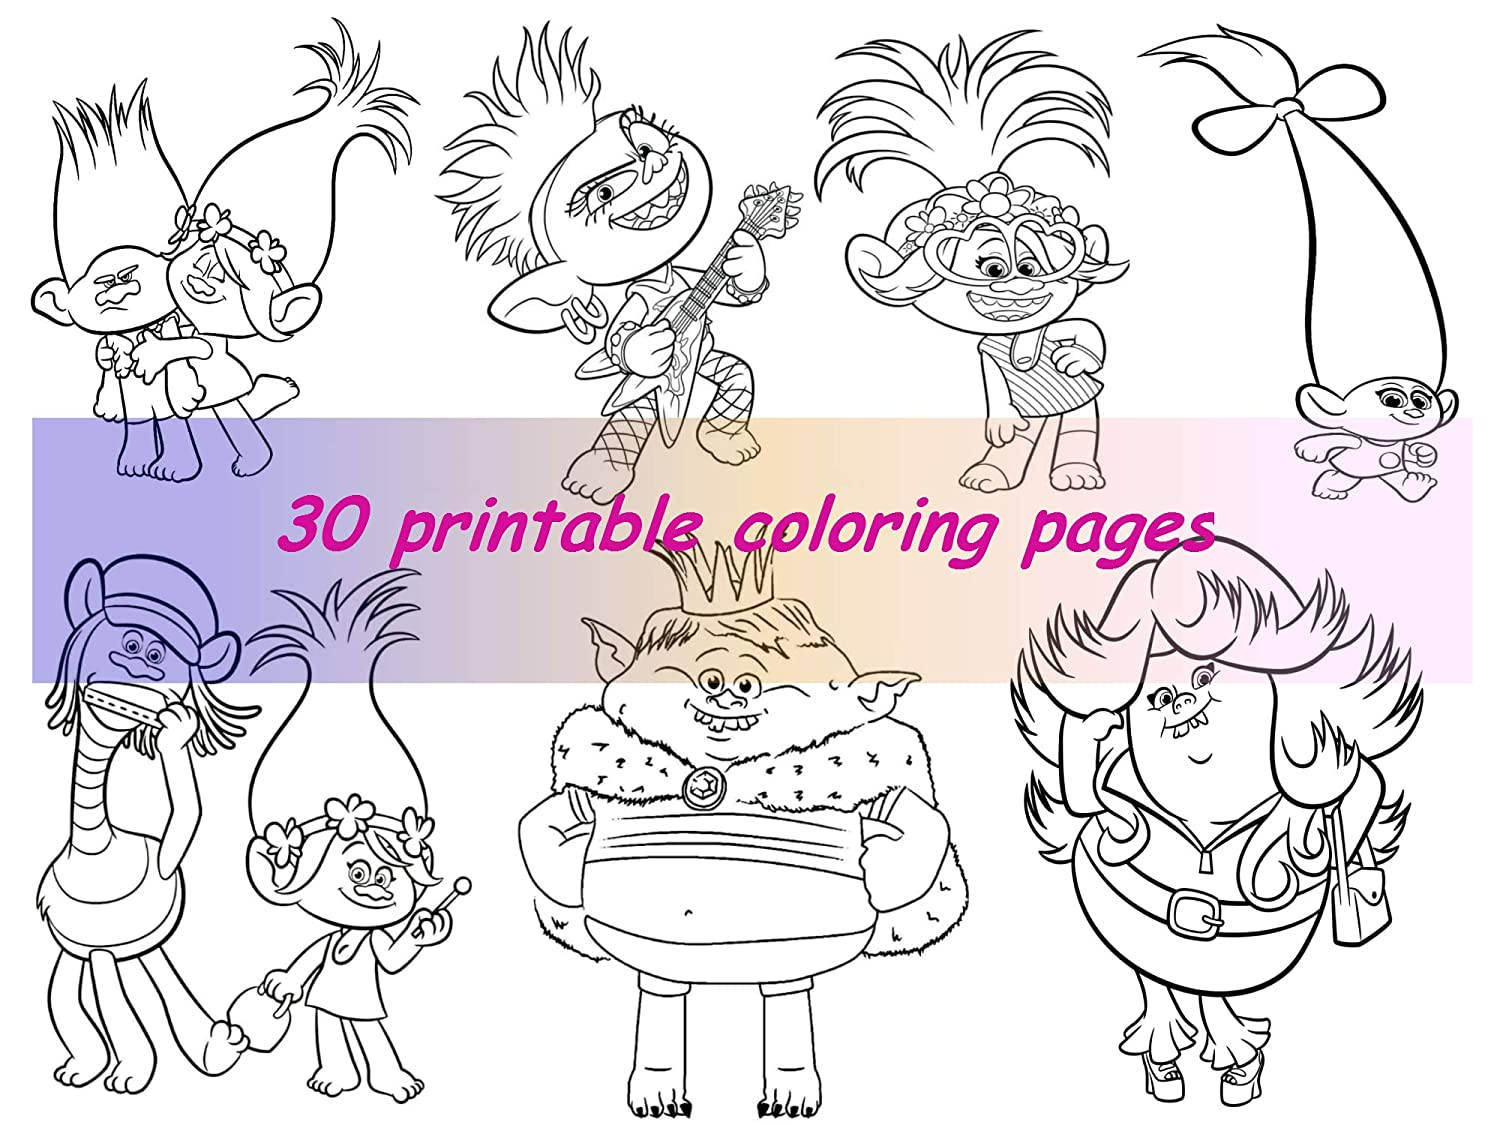 Free Girl And Boy Coloring Page, Download Free Clip Art, Free Clip ...   1125x1500